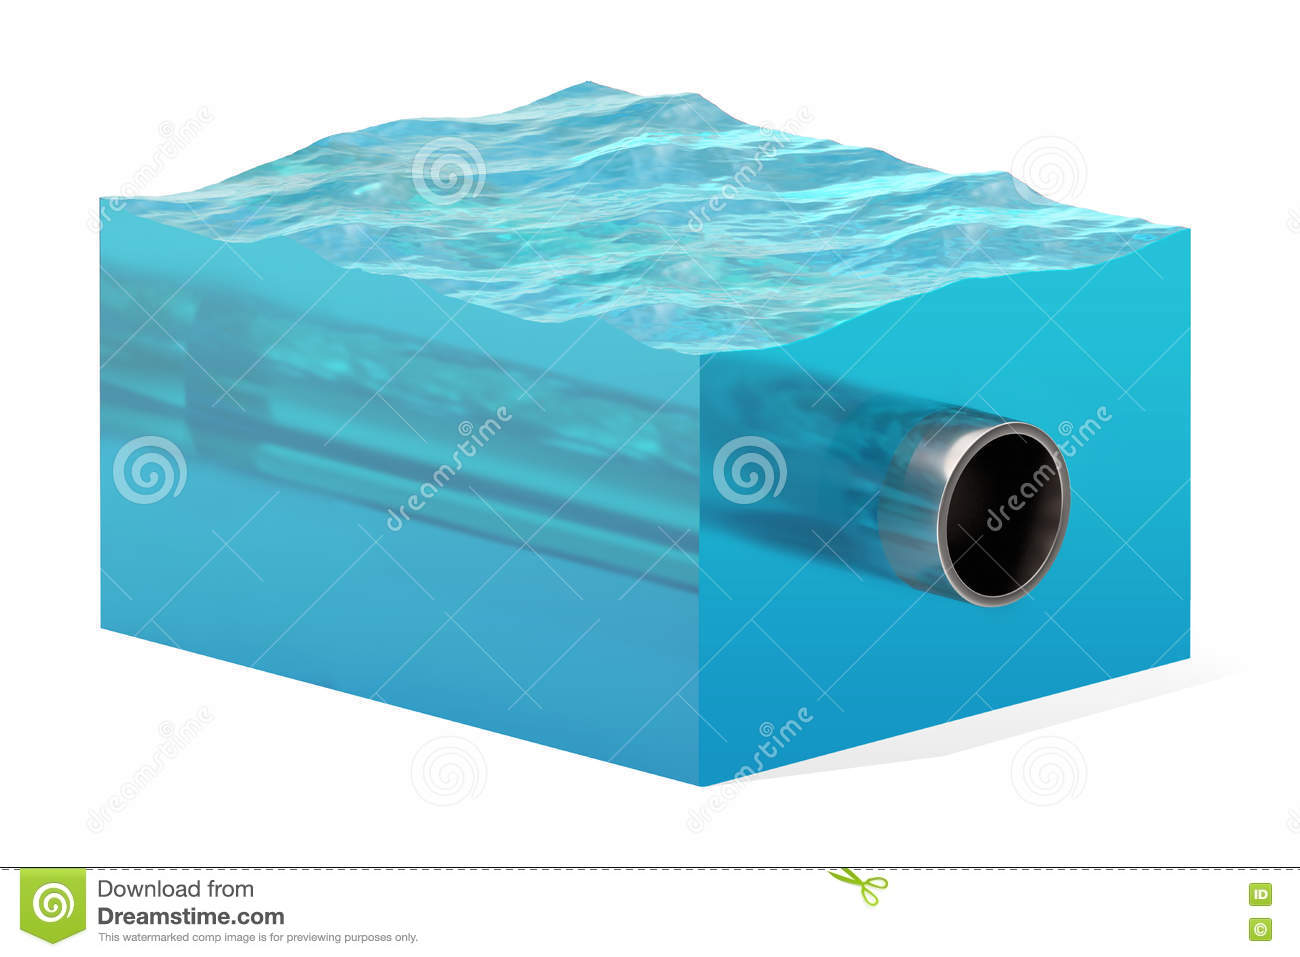 3d Rendering Of Cross Section Of Water Cube With Cylinder